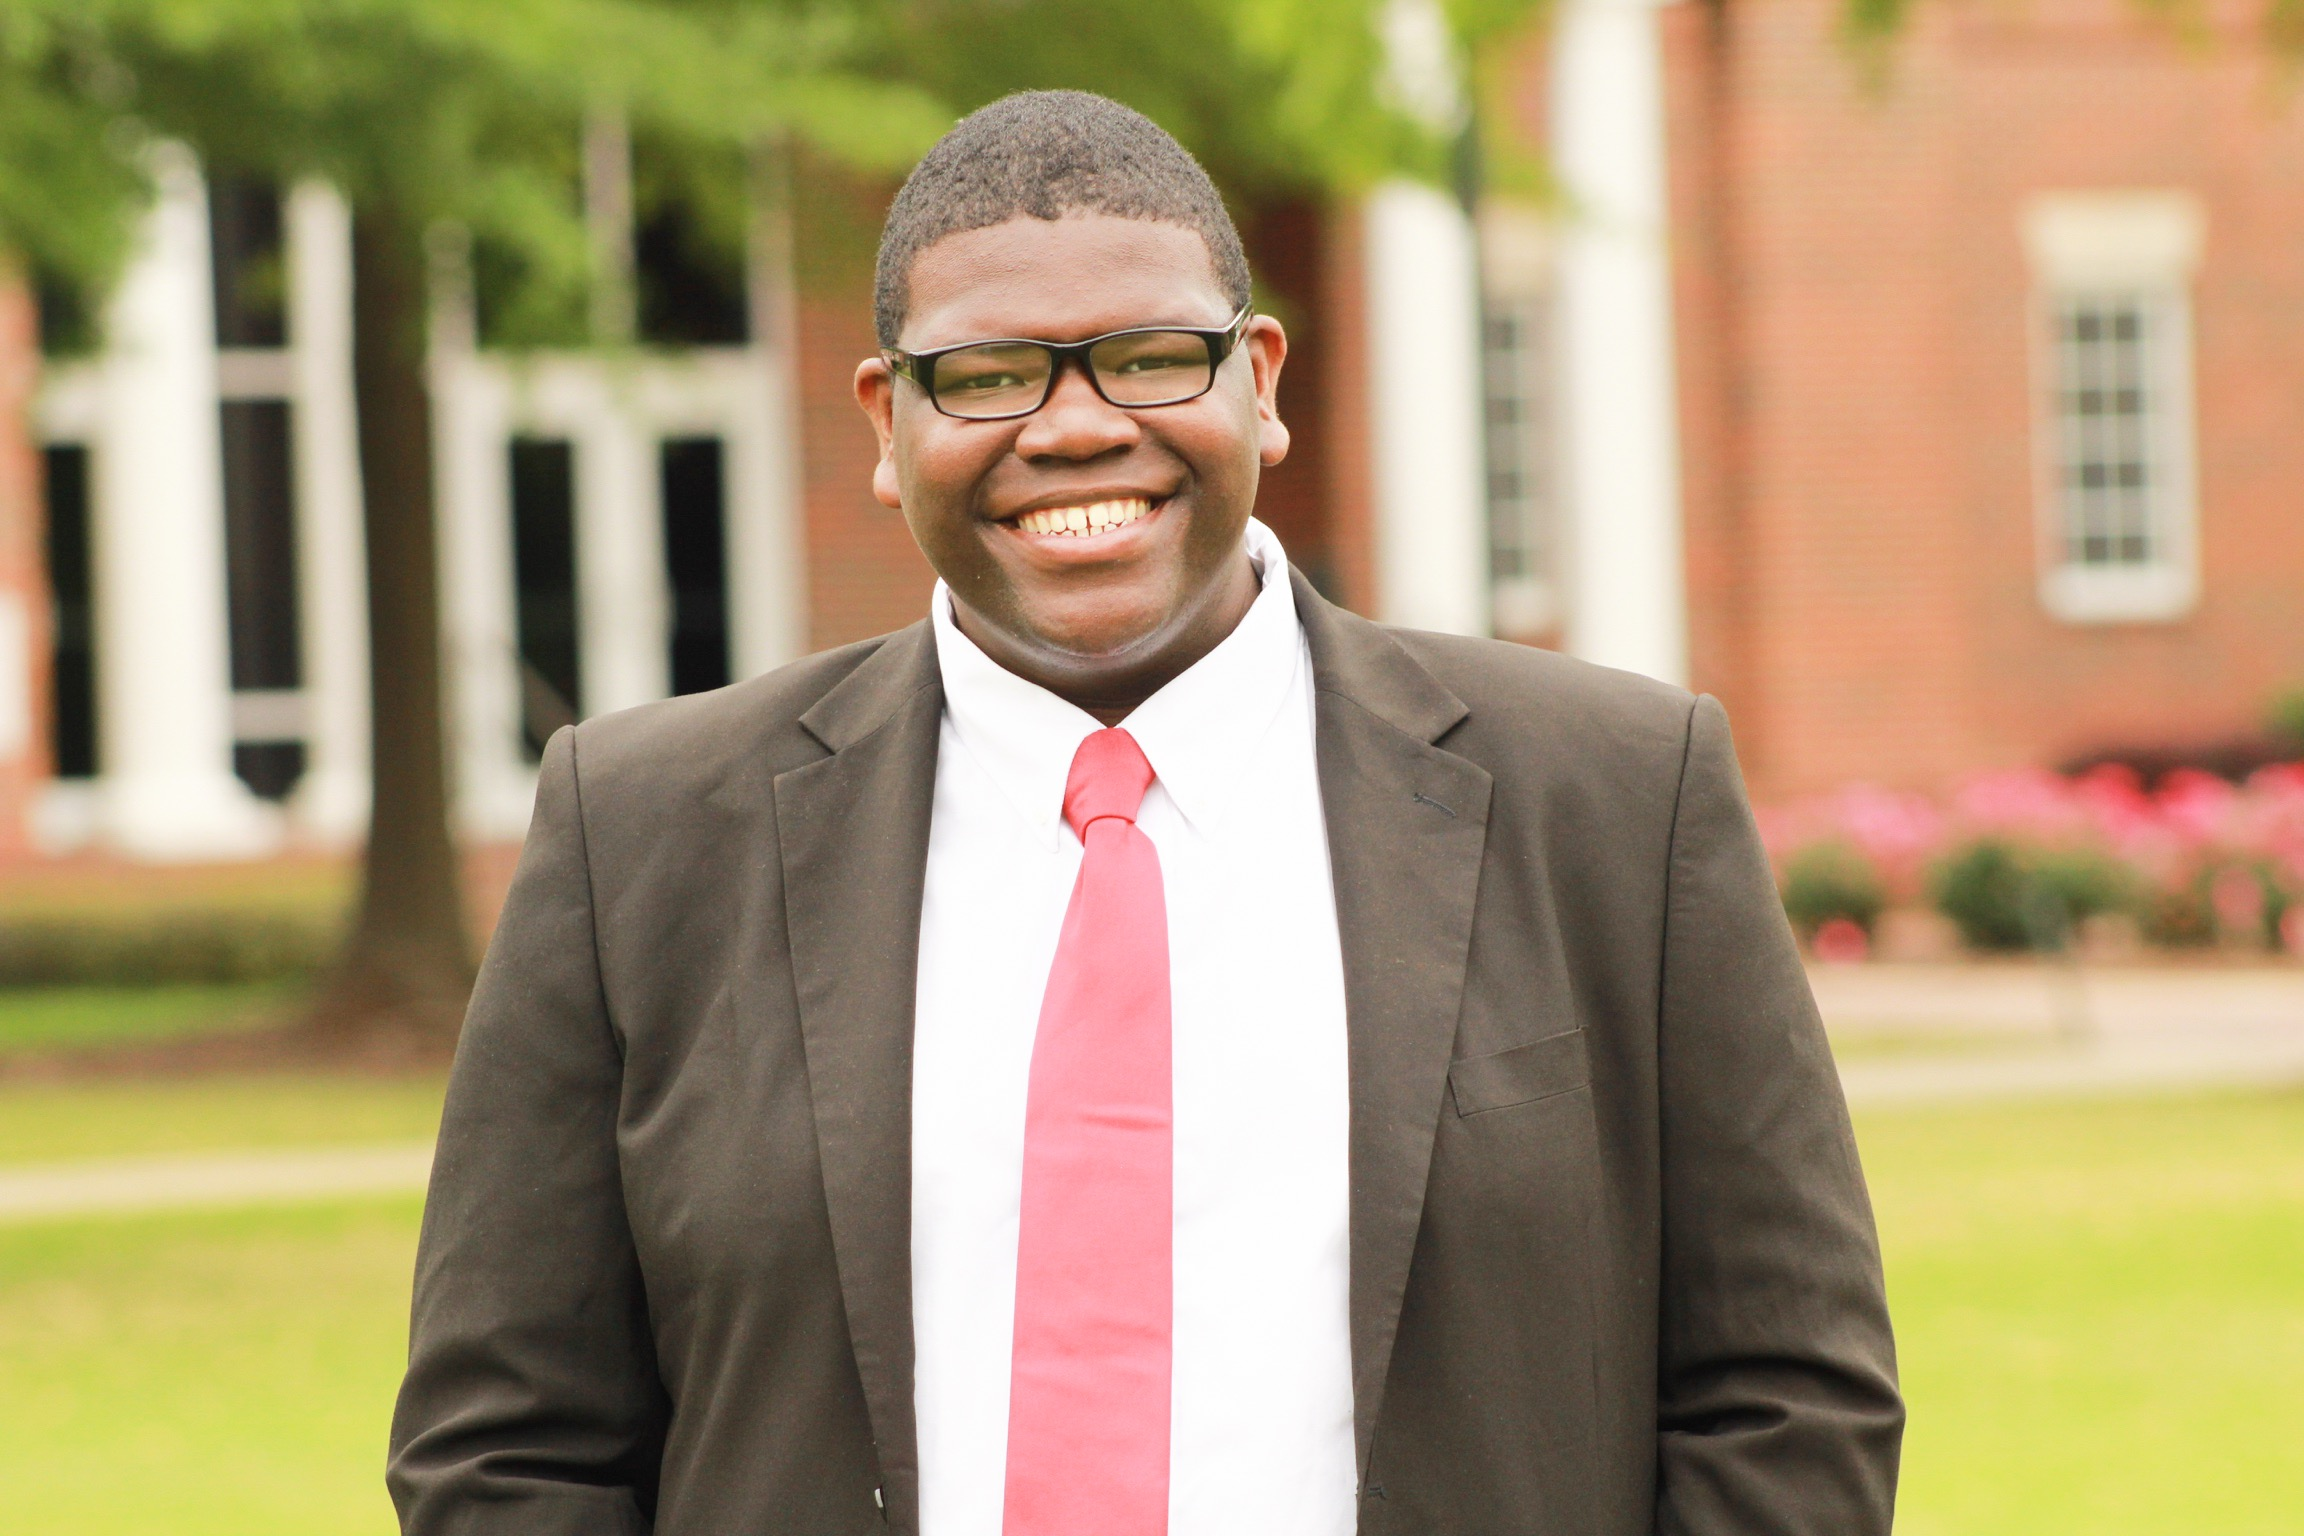 Assistant Activities Coordinator Demond Chandler